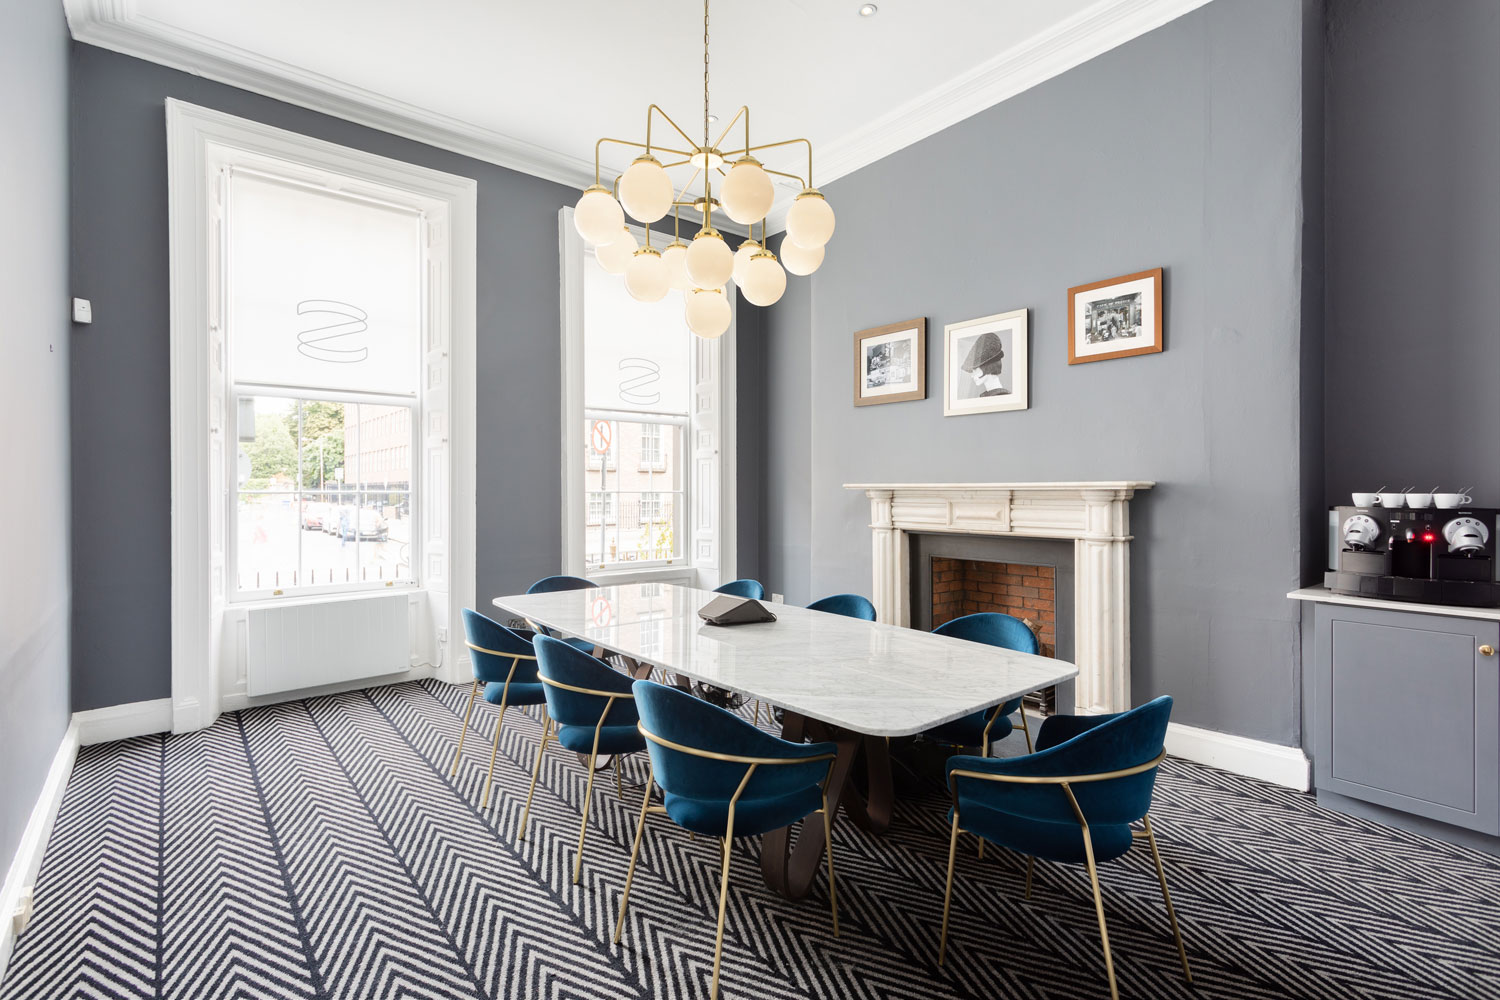 Statement chandeliers in the modern interior of this co-working space in Dublin